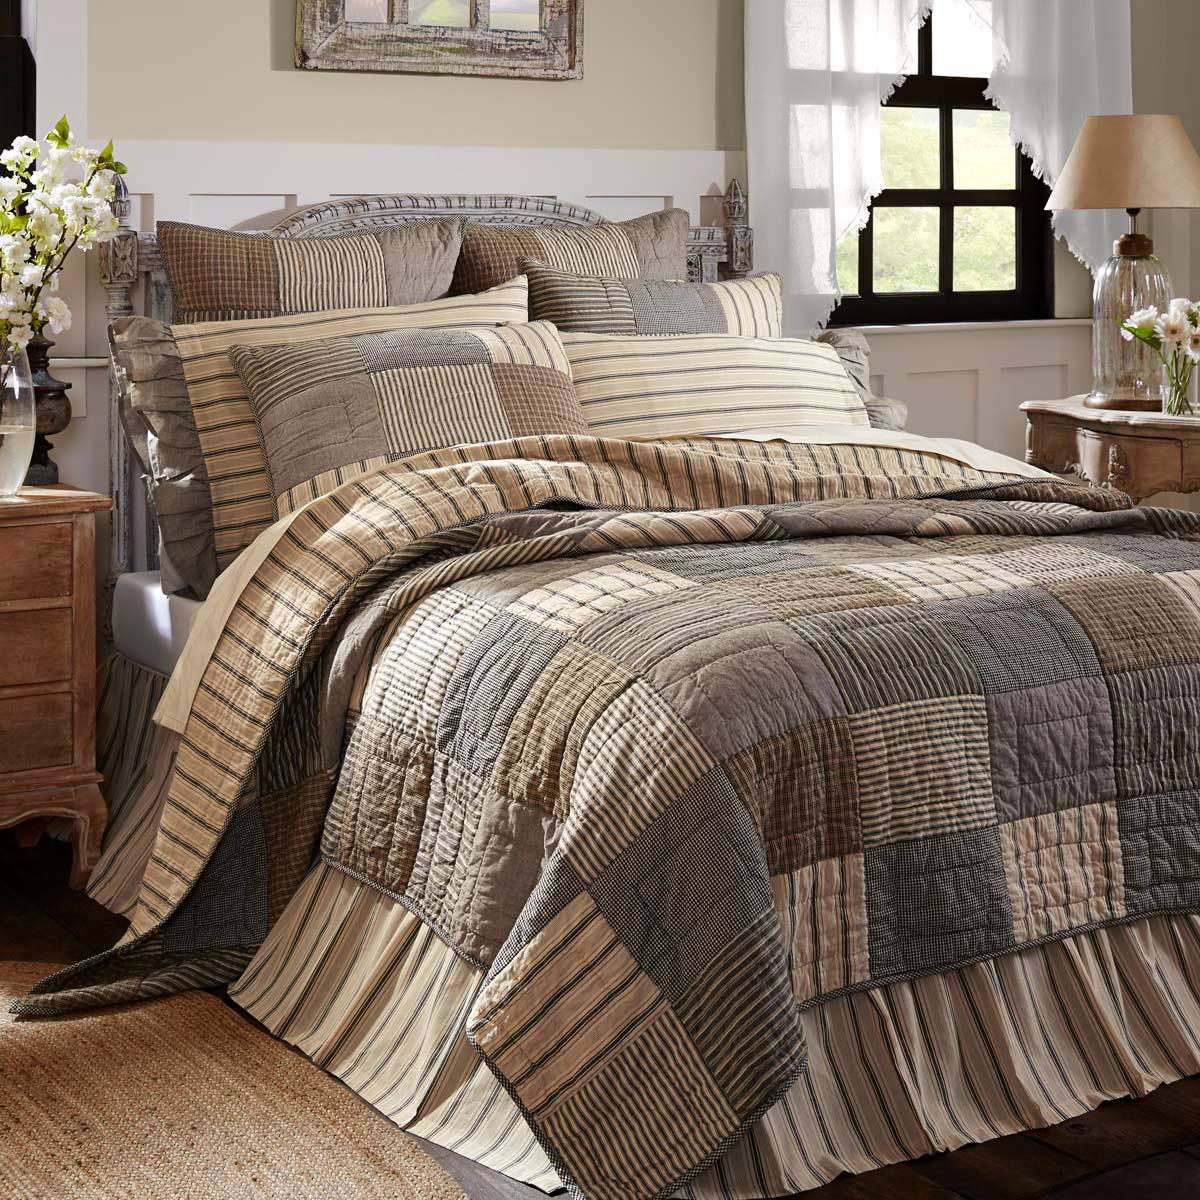 Sawyer Mill Charcoal Quilt 5 Sizes Farmhouse Bedding Farmhouse Quilts Quilt Bedding